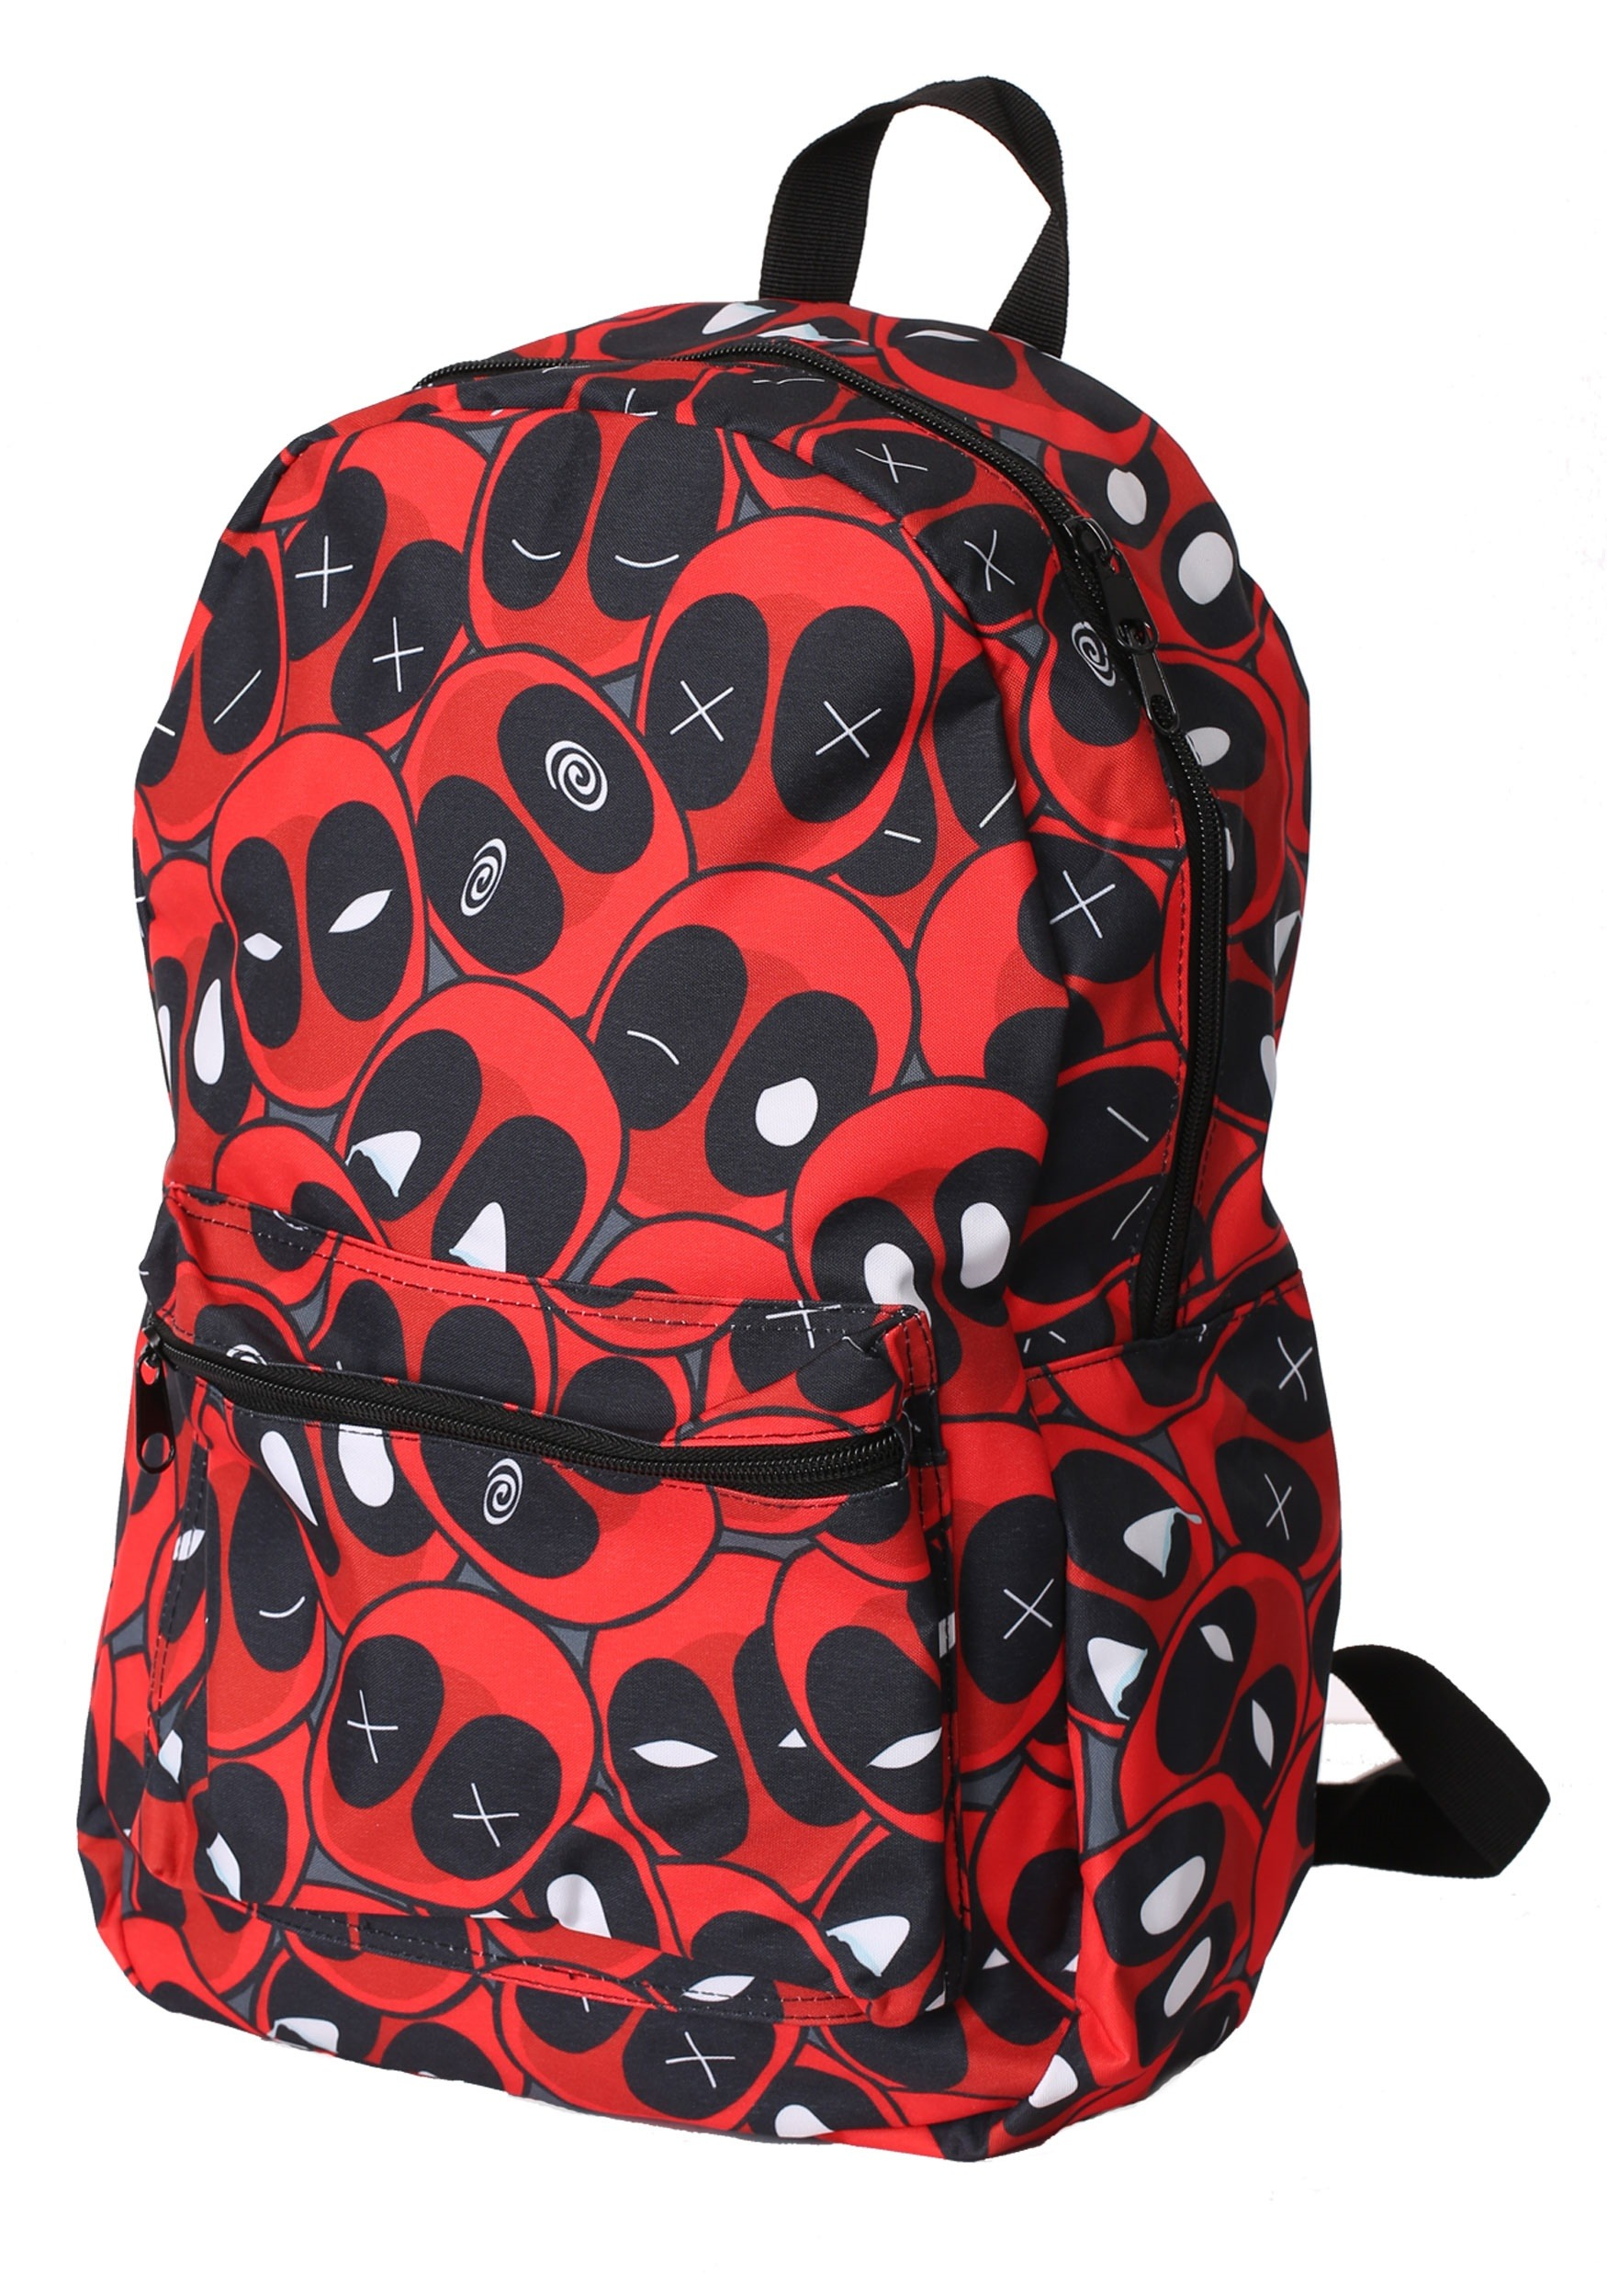 Deadpool Expressions Backpack All- Over Print 0bdc3552a2